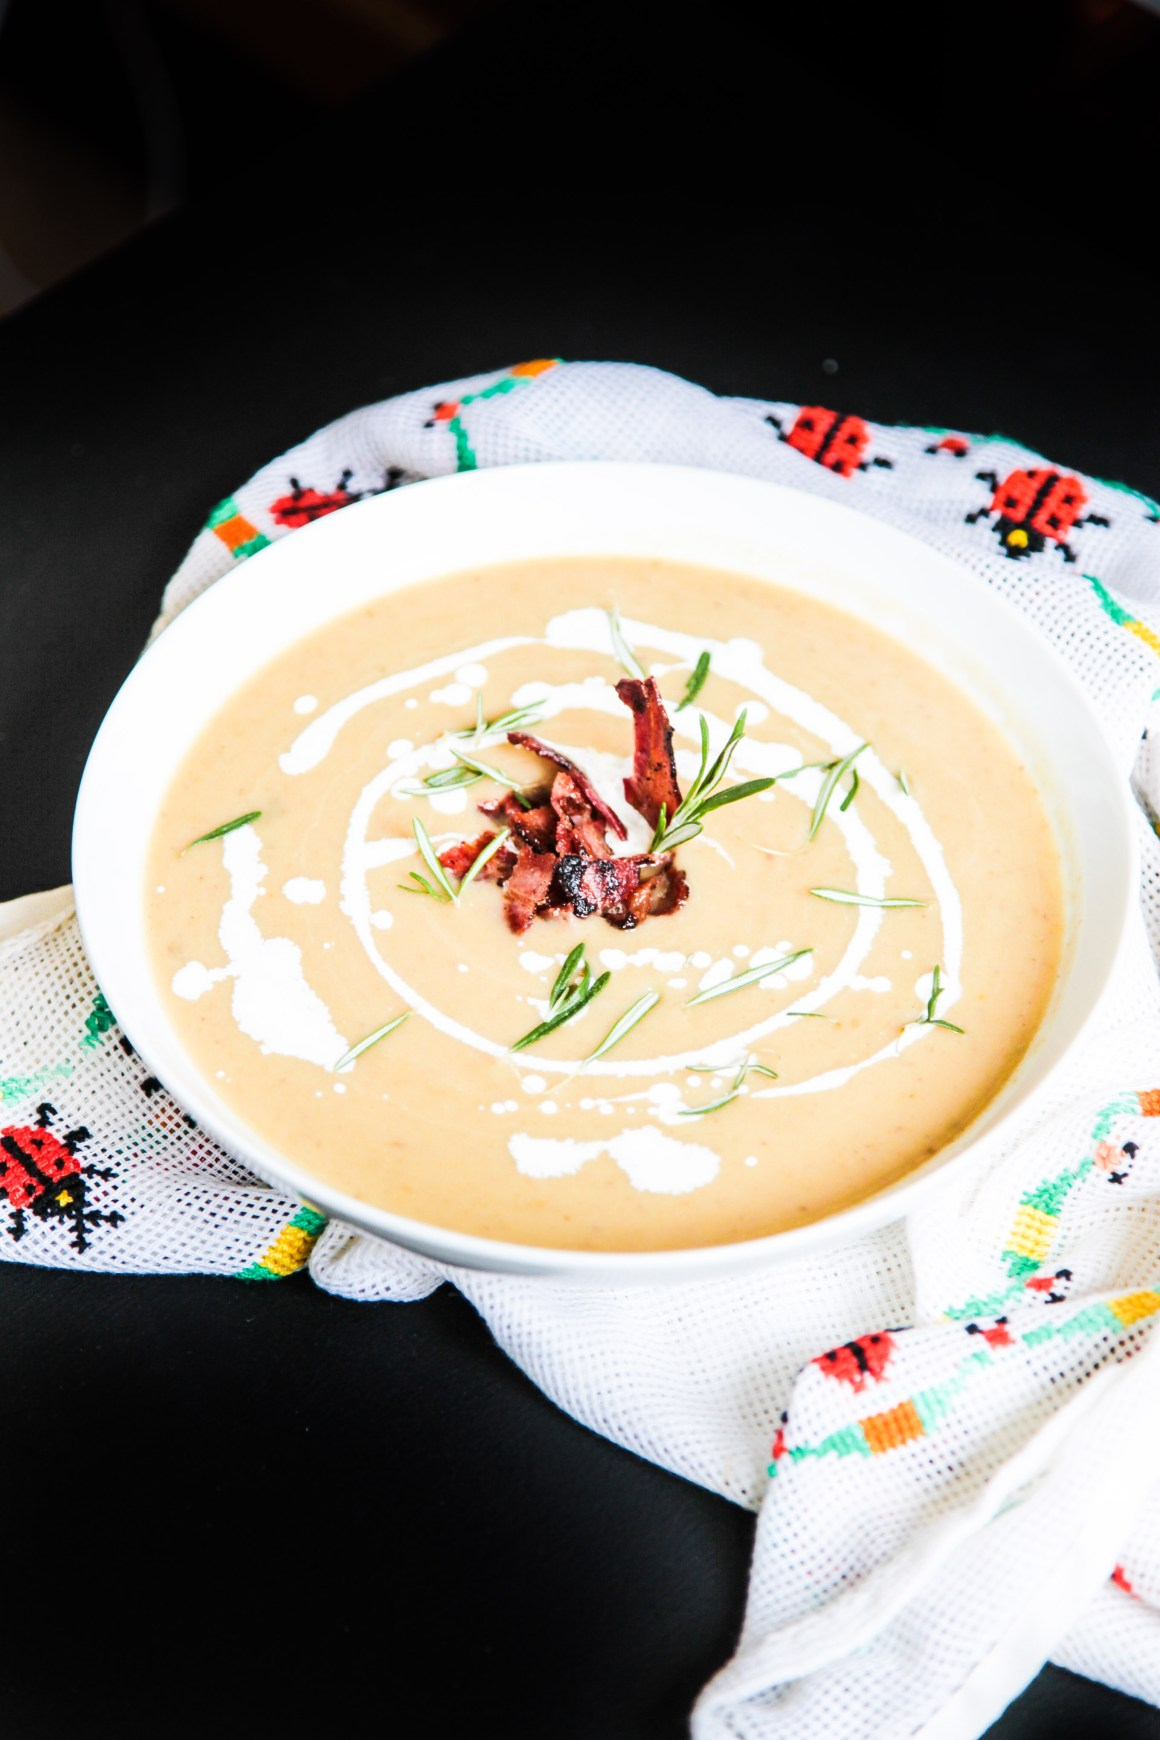 Berries_And_Spice-parsnip-chestnut-soup_4